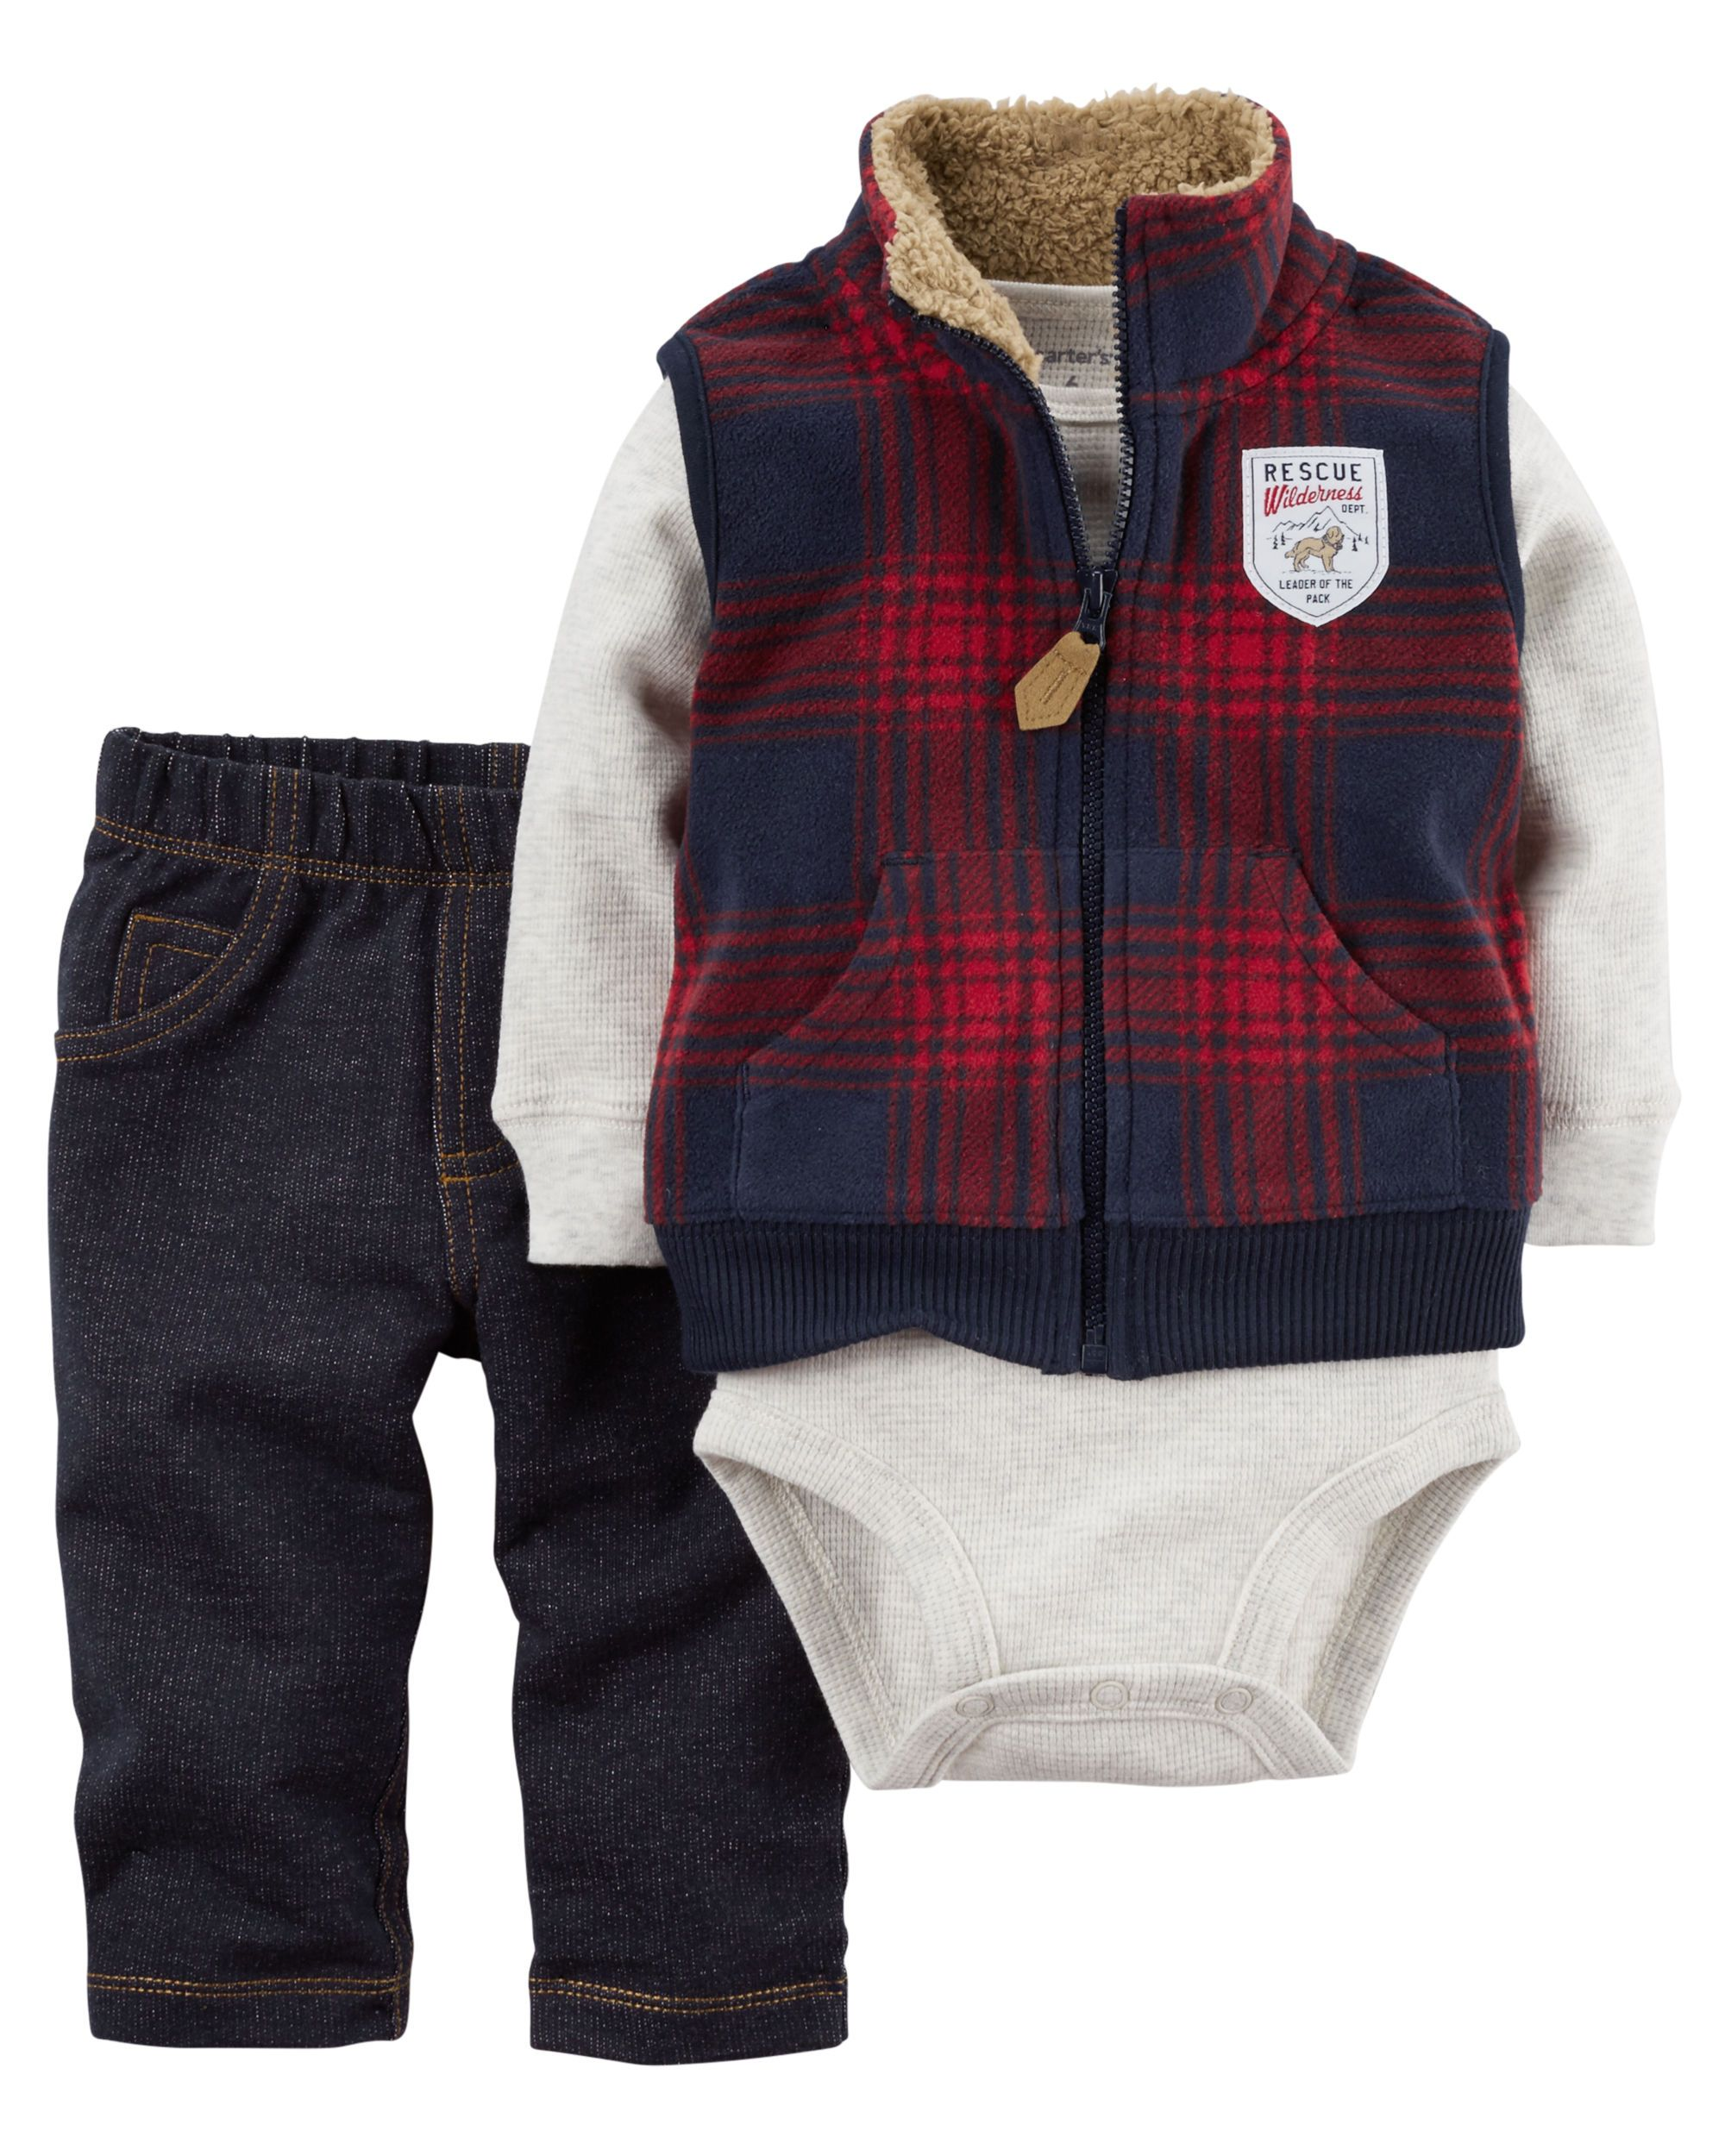 535e81440 Baby Boy 3-Piece Little Vest Set | Carters.com | Baby fashion ...